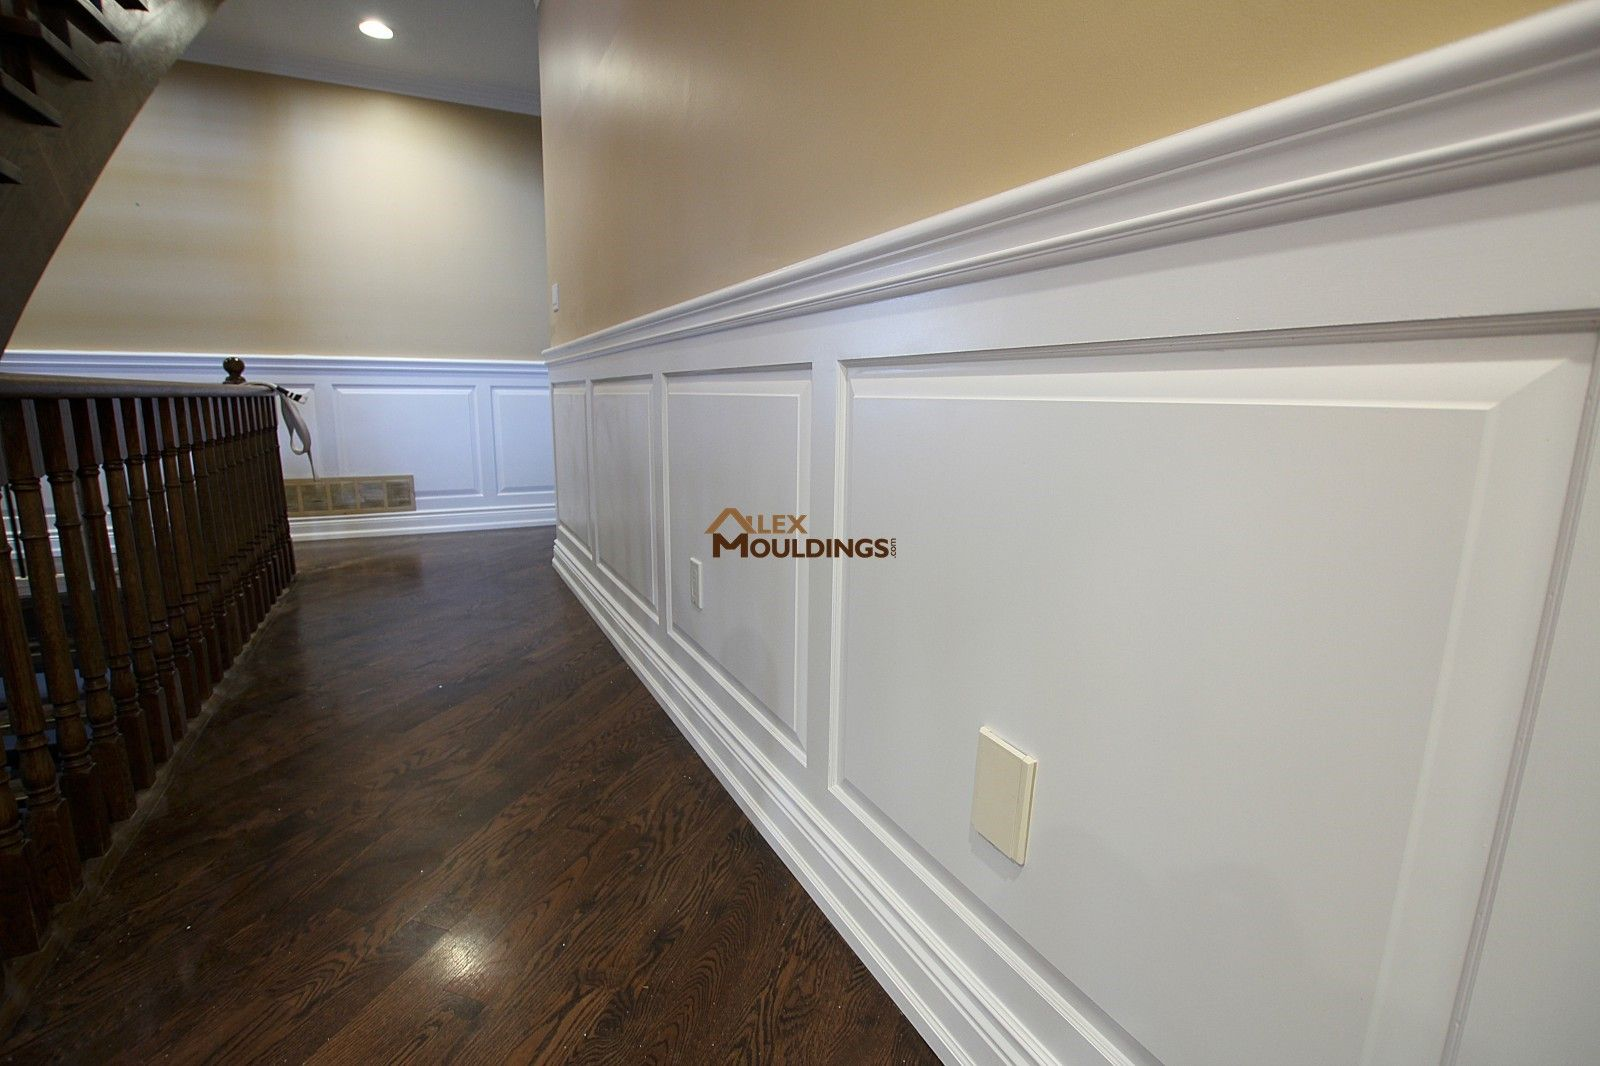 The White Wainscoting Panels Complement The Corridors Of This